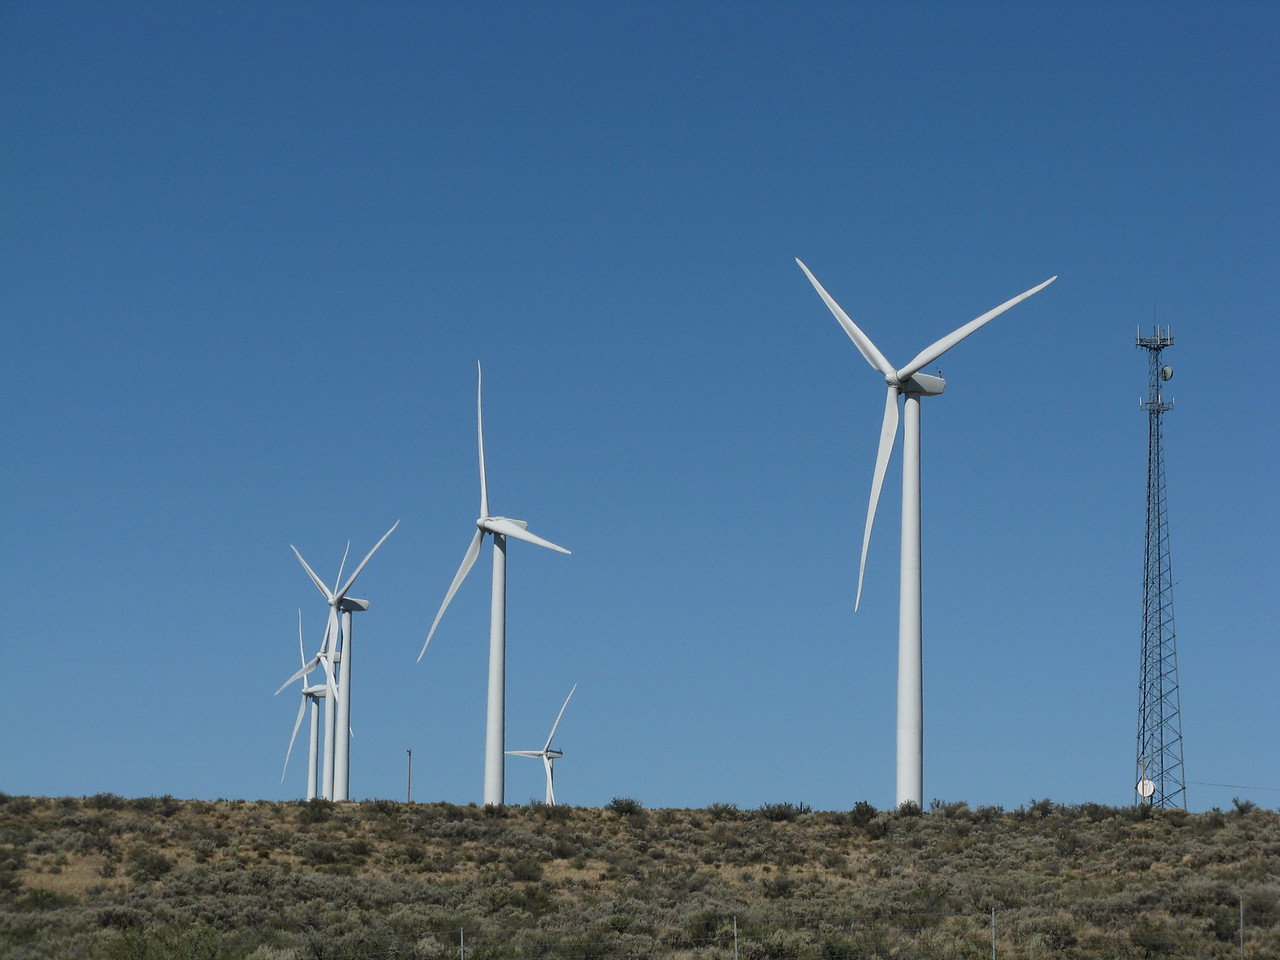 Each wind mill houses a 1.8-megawatt Vestas V80 turbine.  The turbines are placed on the high open ridge tops of Whiskey Dick Mountain, which was chosen for its energetic wind resource, remote location, and access to nearby power transmission lines. The towers are 221 feet (67 m) tall, and each rotor is 129 feet (39 m) long, with a total rotor diameter of 264 feet (80 m), larger than the wingspan of a Boeing 747. The turbines can begin producing electricity with wind speeds as low as 9 mph (14 km/h) and reach full production at 31 mph (50 km/h). They shut down at sustained wind speeds of 56 mph (90 km/h).